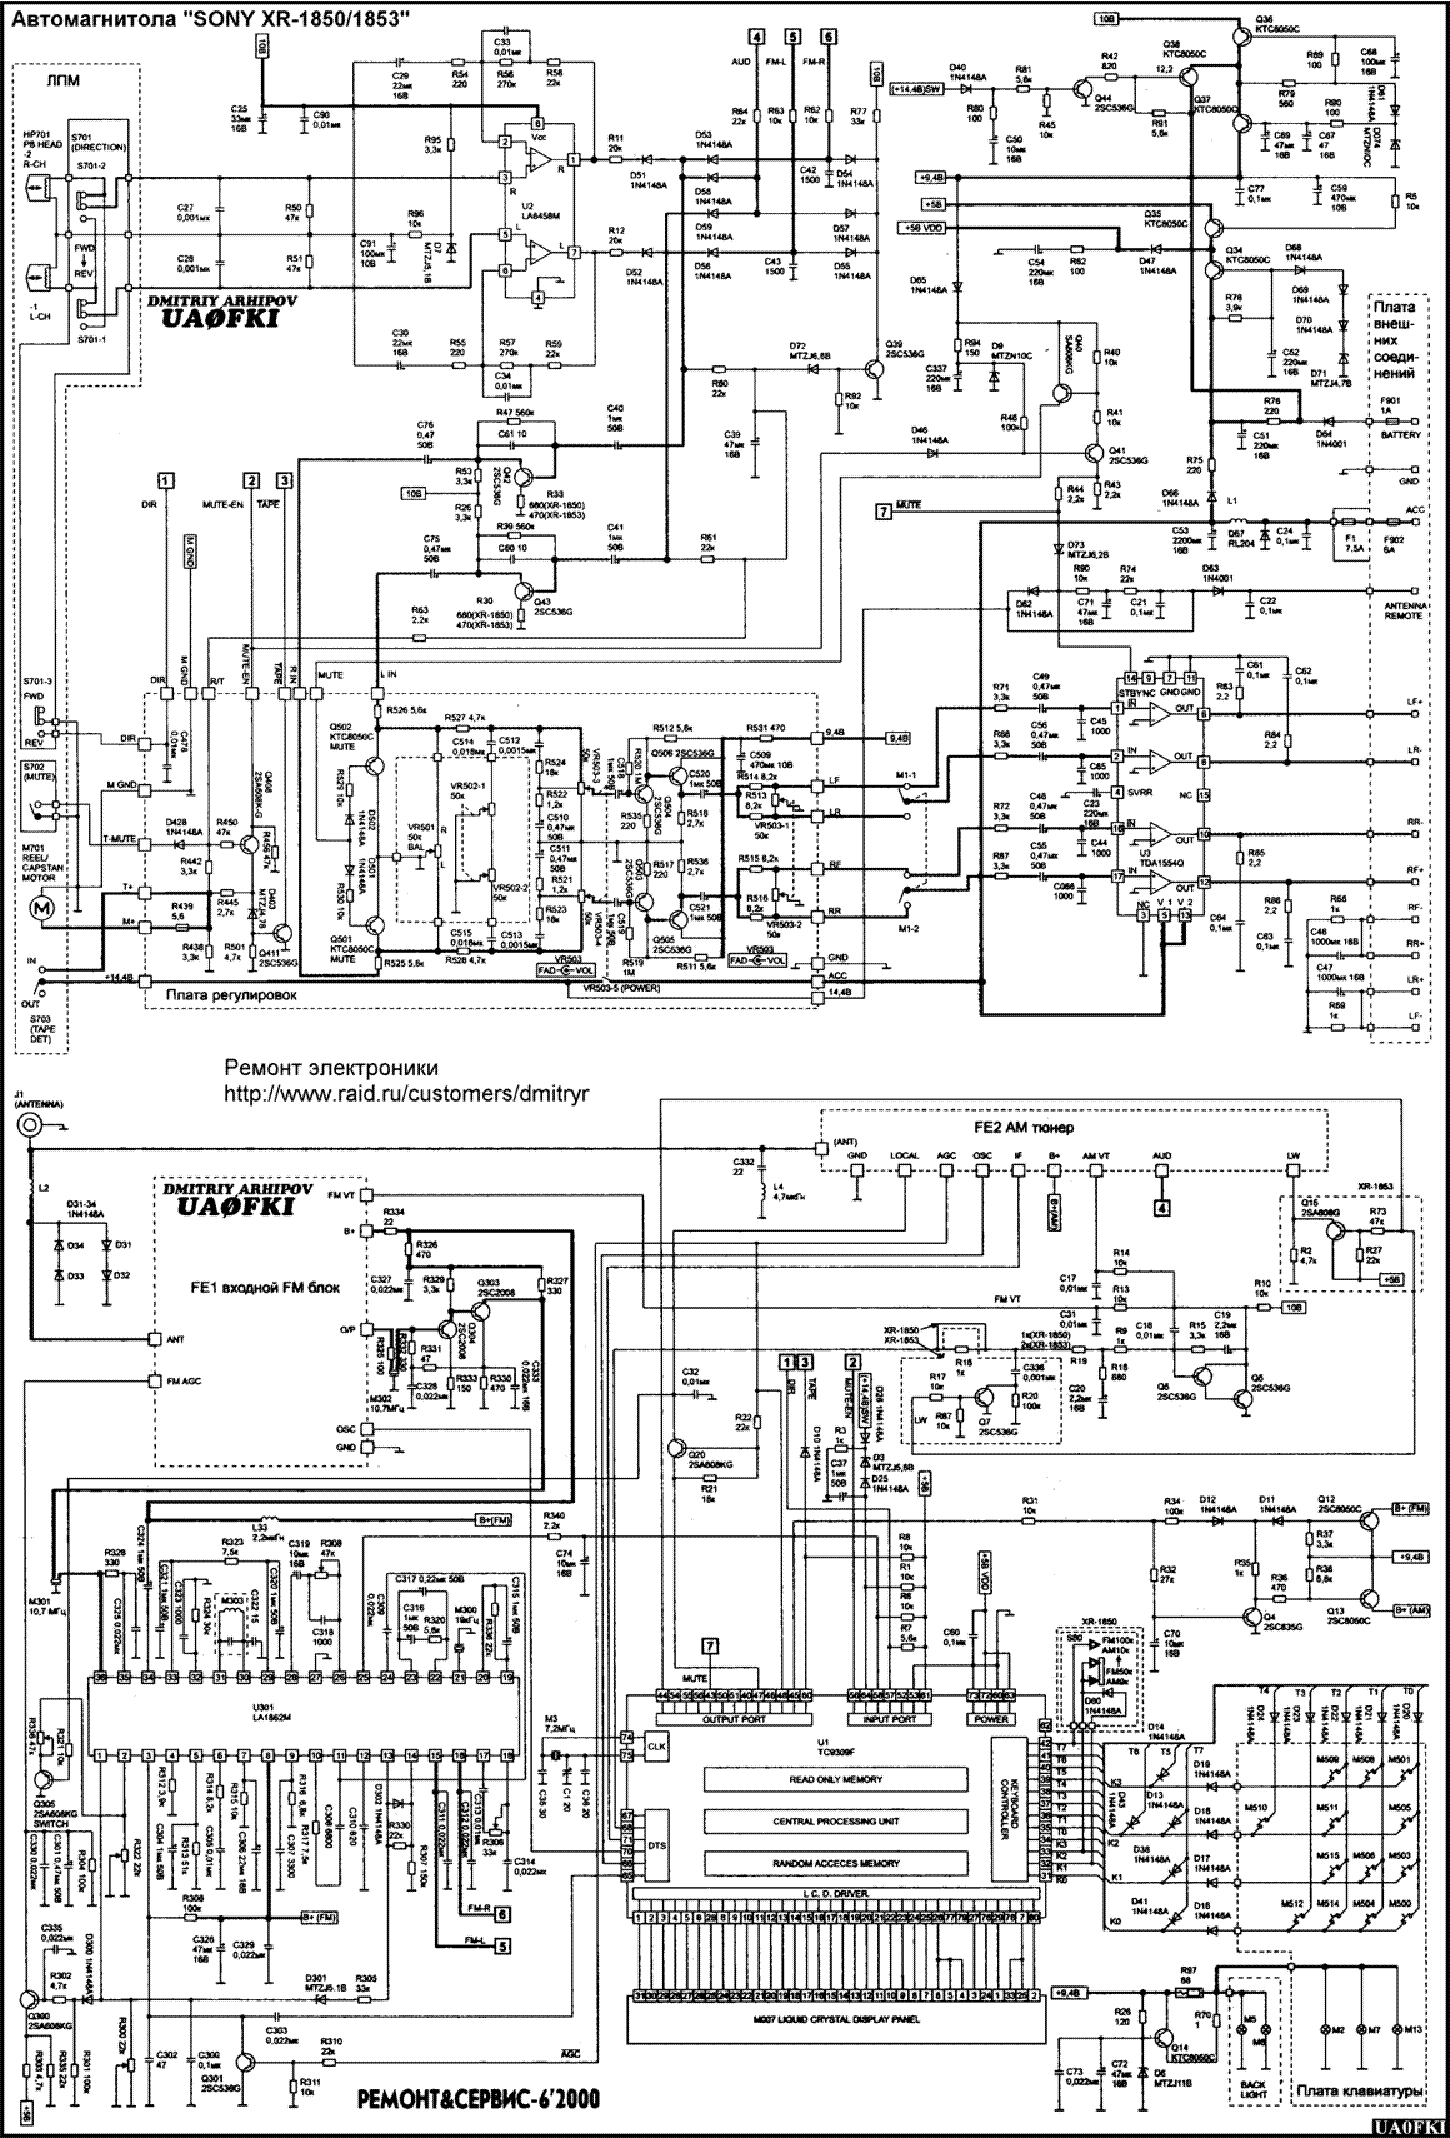 Sony Explode Wiring Harness. Diagrams. Wiring Diagram Images